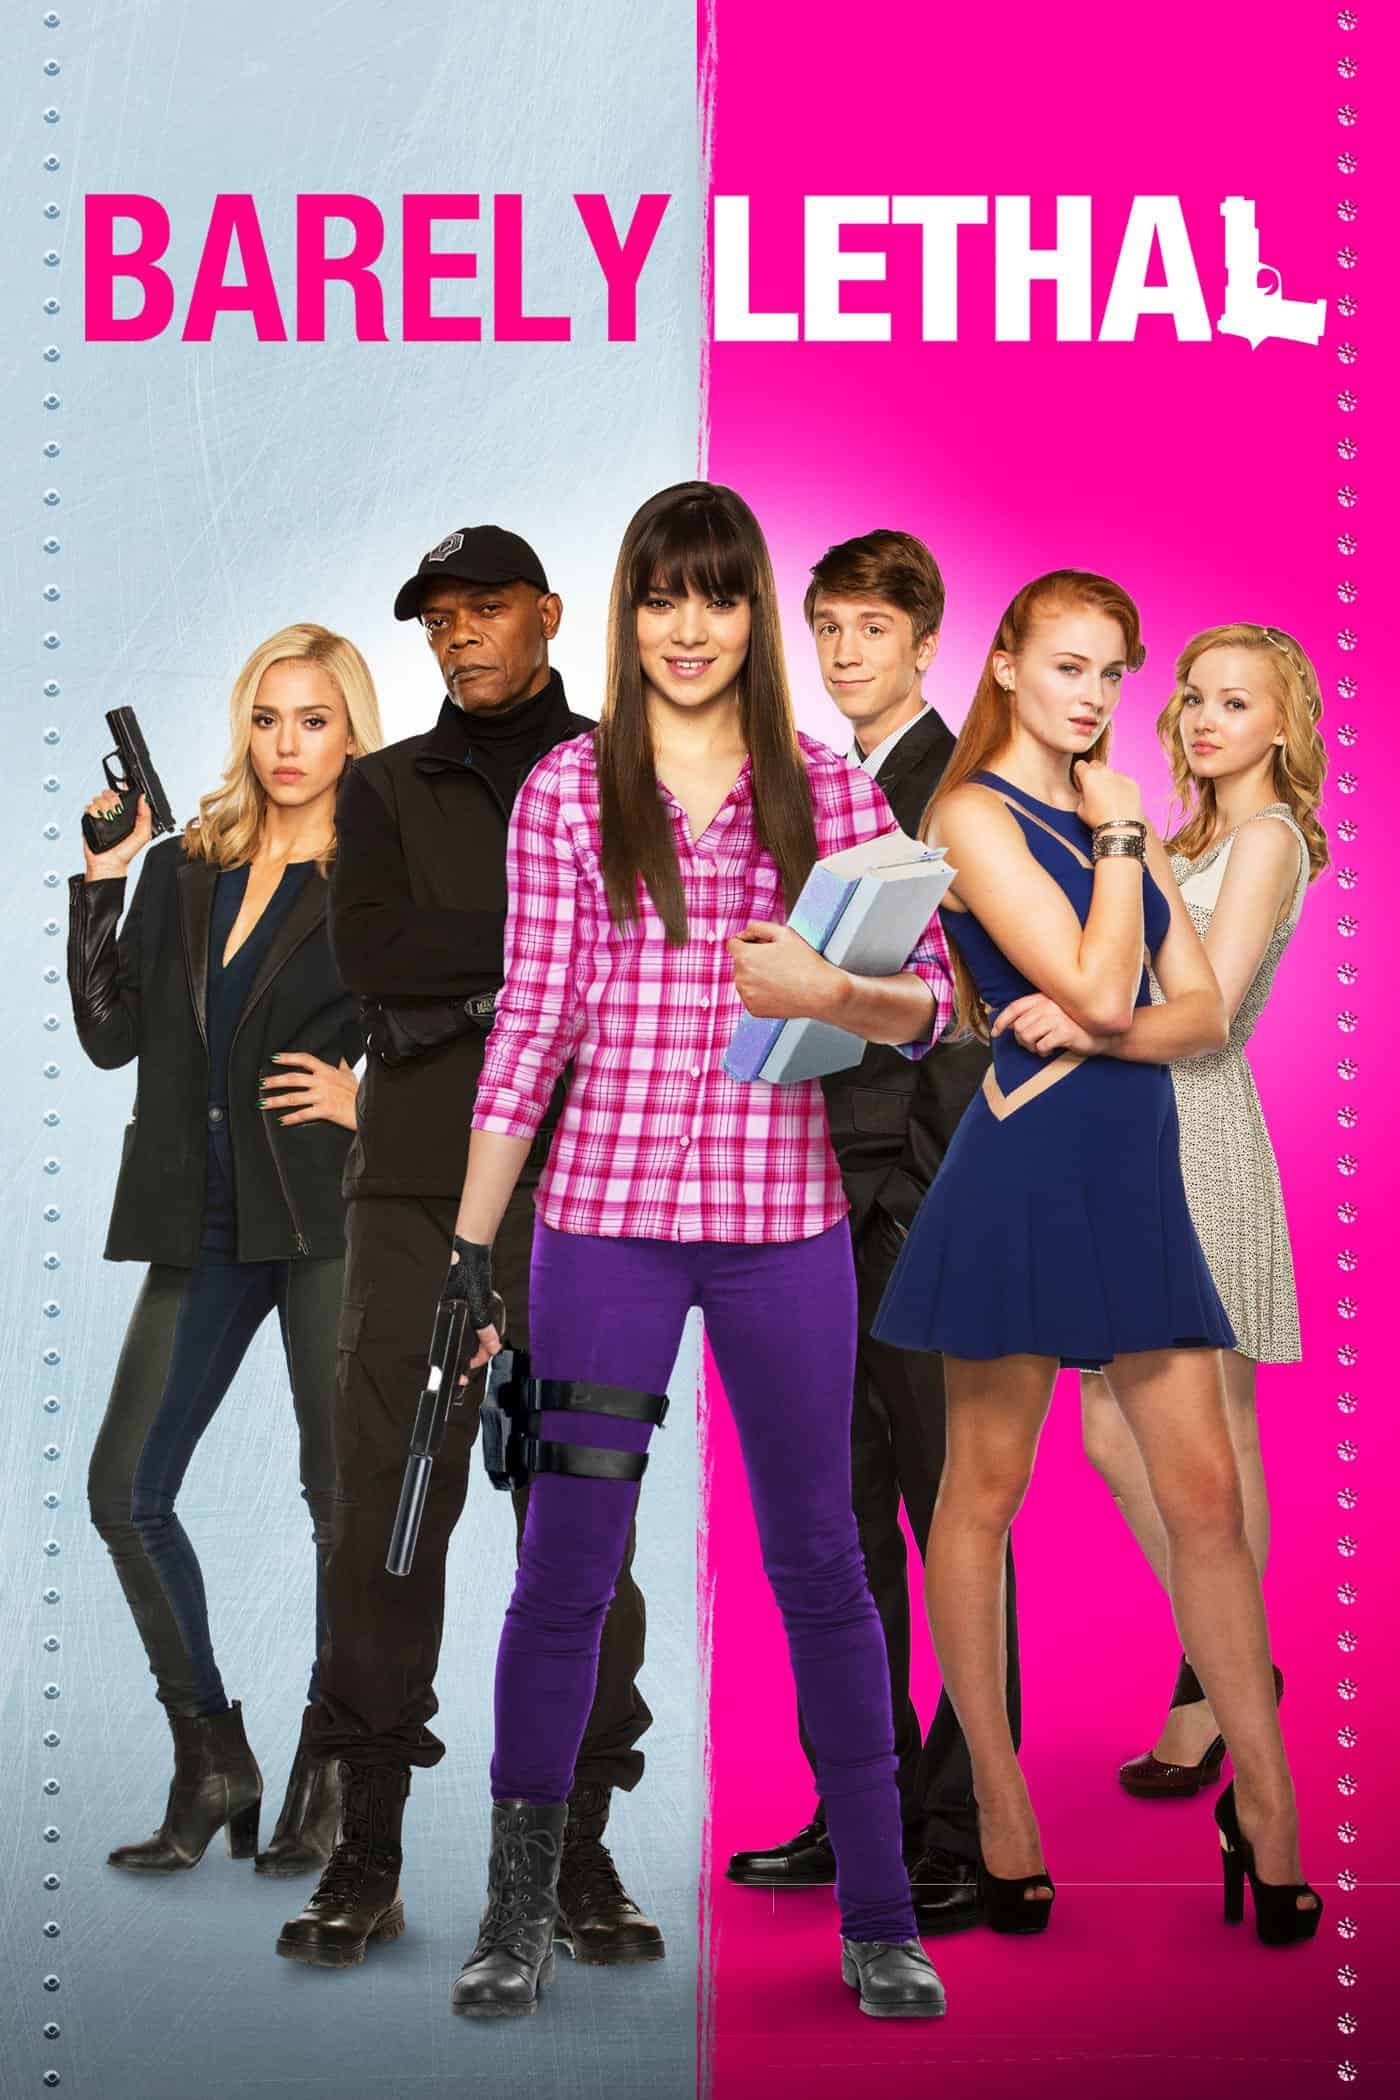 Barely Lethal, 2015